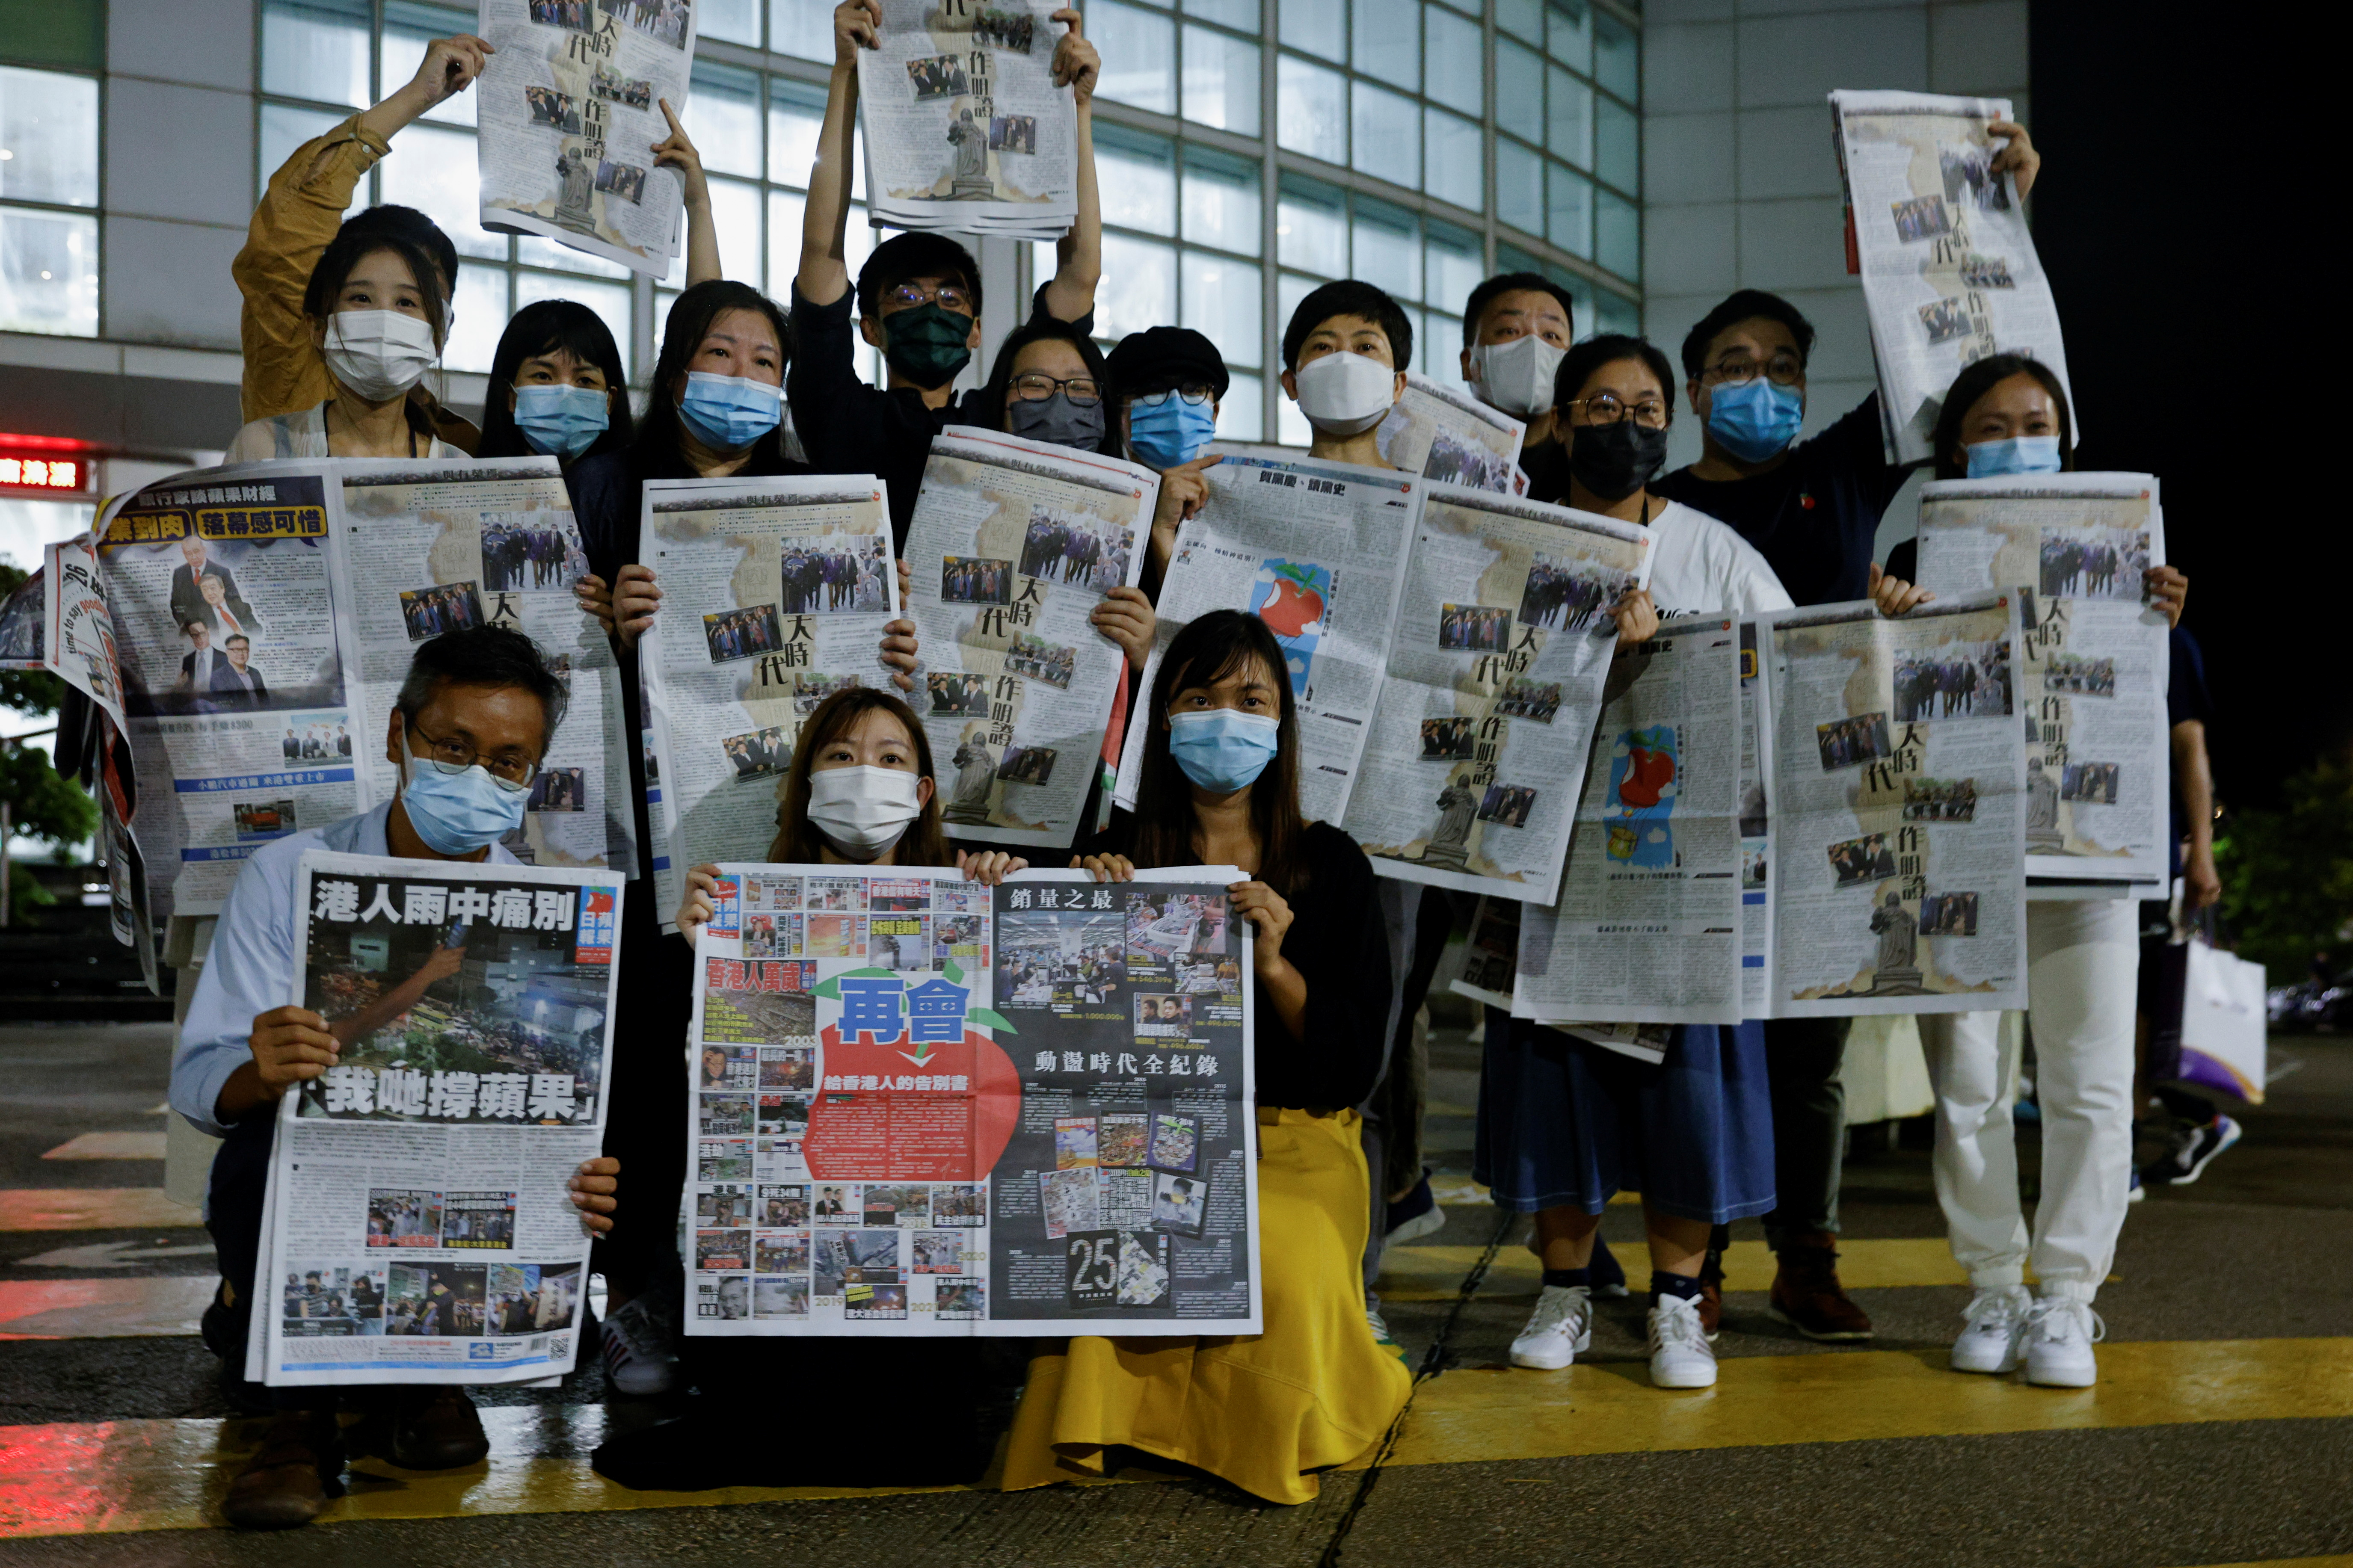 Staff members of Apple Daily and its publisher Next Digital pose with the final edition of Apple Daily at its headquarters in Hong Kong, China June 24, 2021. REUTERS/Tyrone Siu